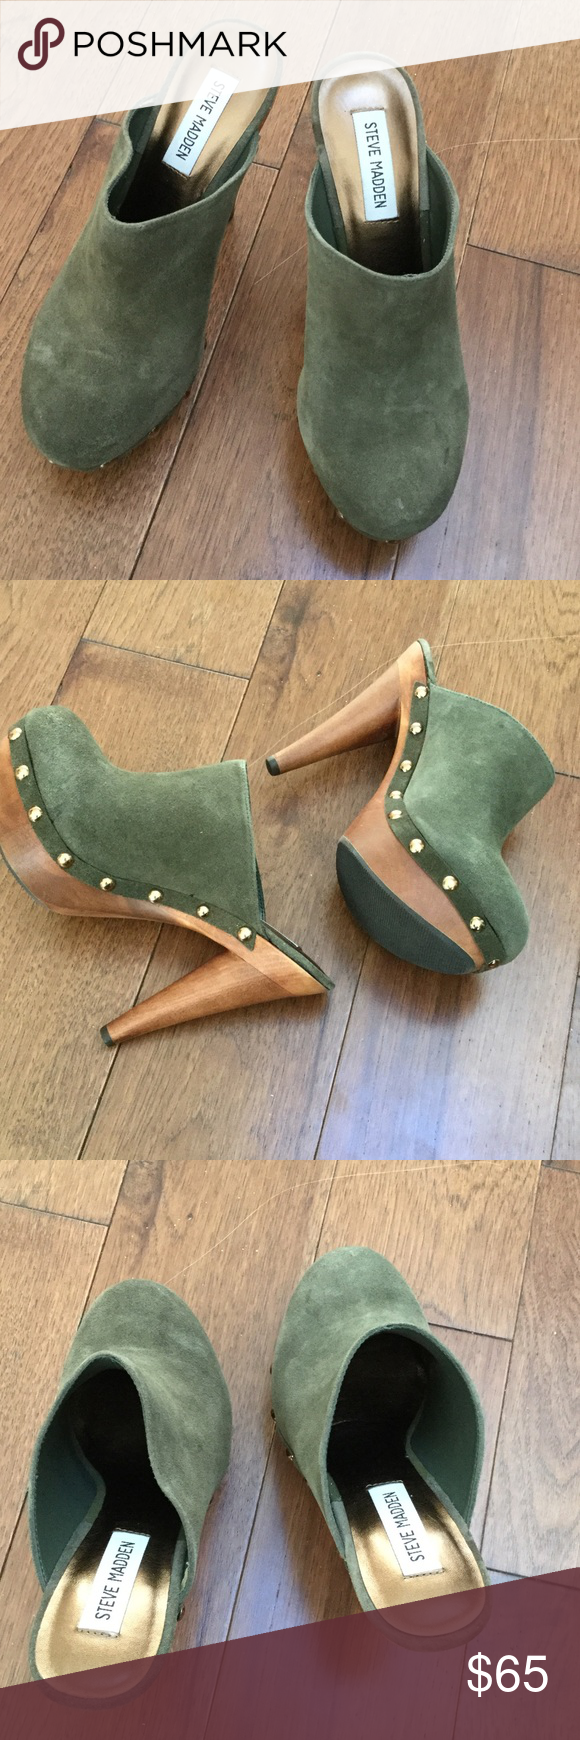 "STEVE MADDEN DISCCO OLIVE SUEDE CLOGS STEVE MADDEN DISCCO OLIVE SUEDE WOOD CLOG HEELS. WOOD PLATFORM WITH BRASS NAILHEADS. HEELS 5""   Never WORN. Steve Madden Shoes Mules & Clogs"